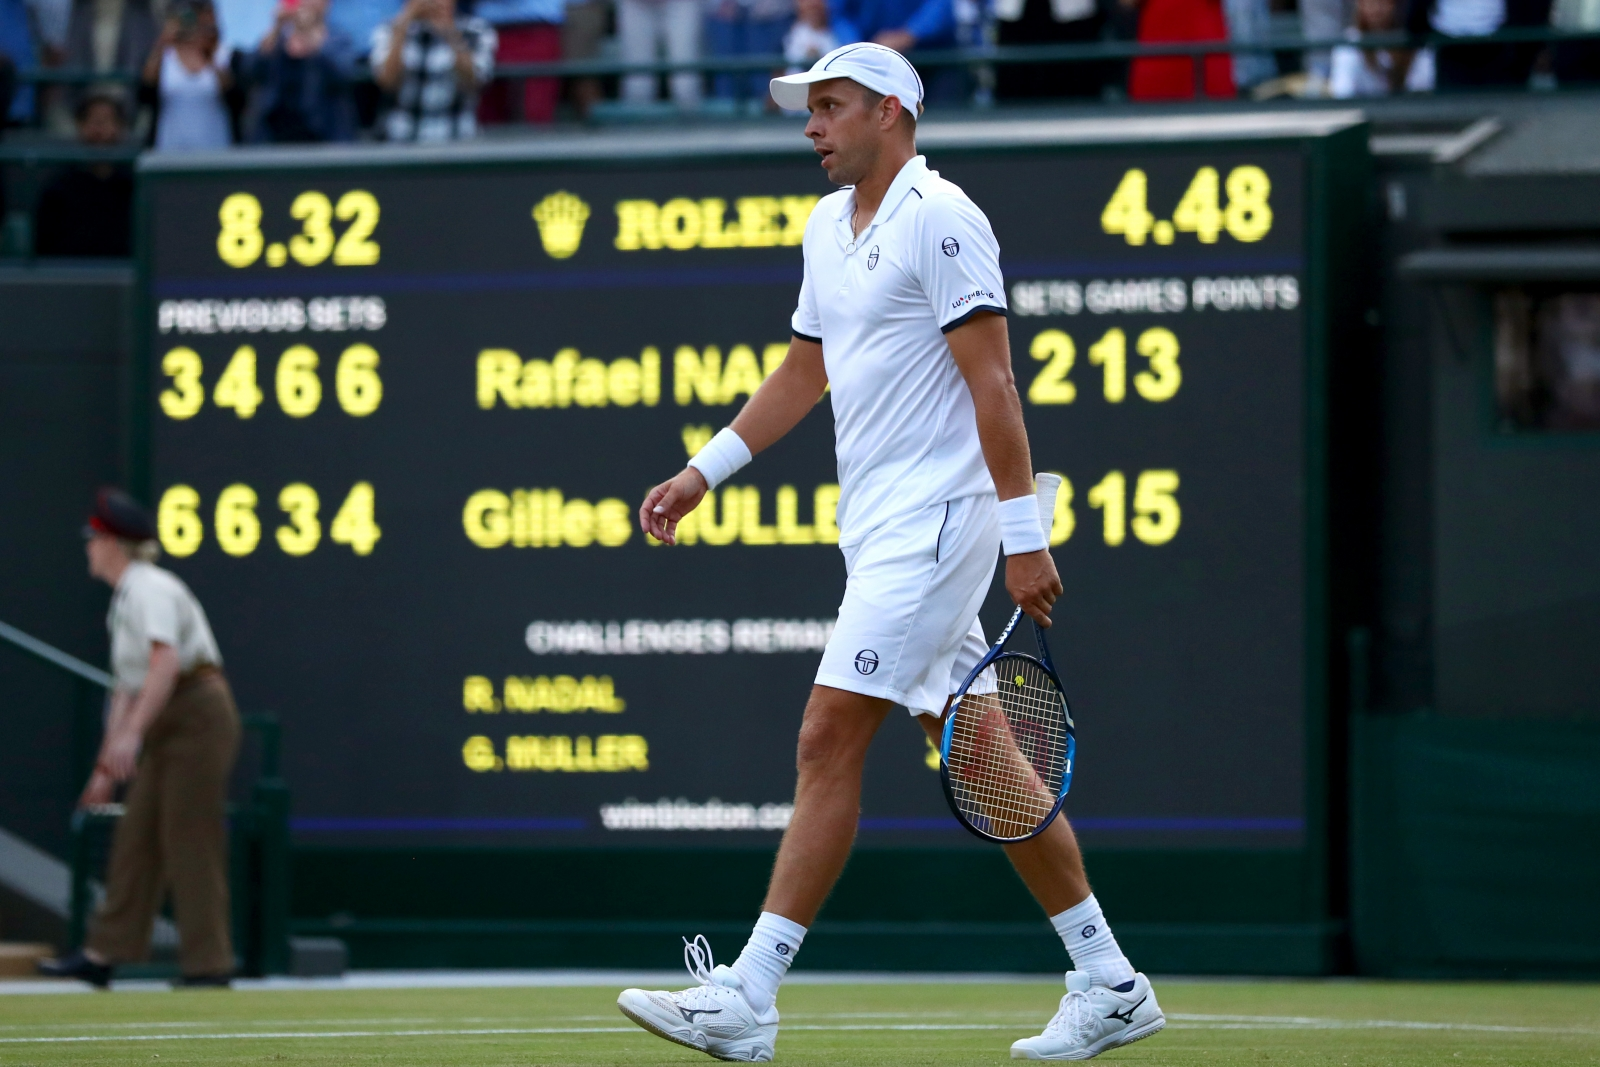 Rafael Nadal vs Gilles Muller: Wimbledon fourth round preview and prediction